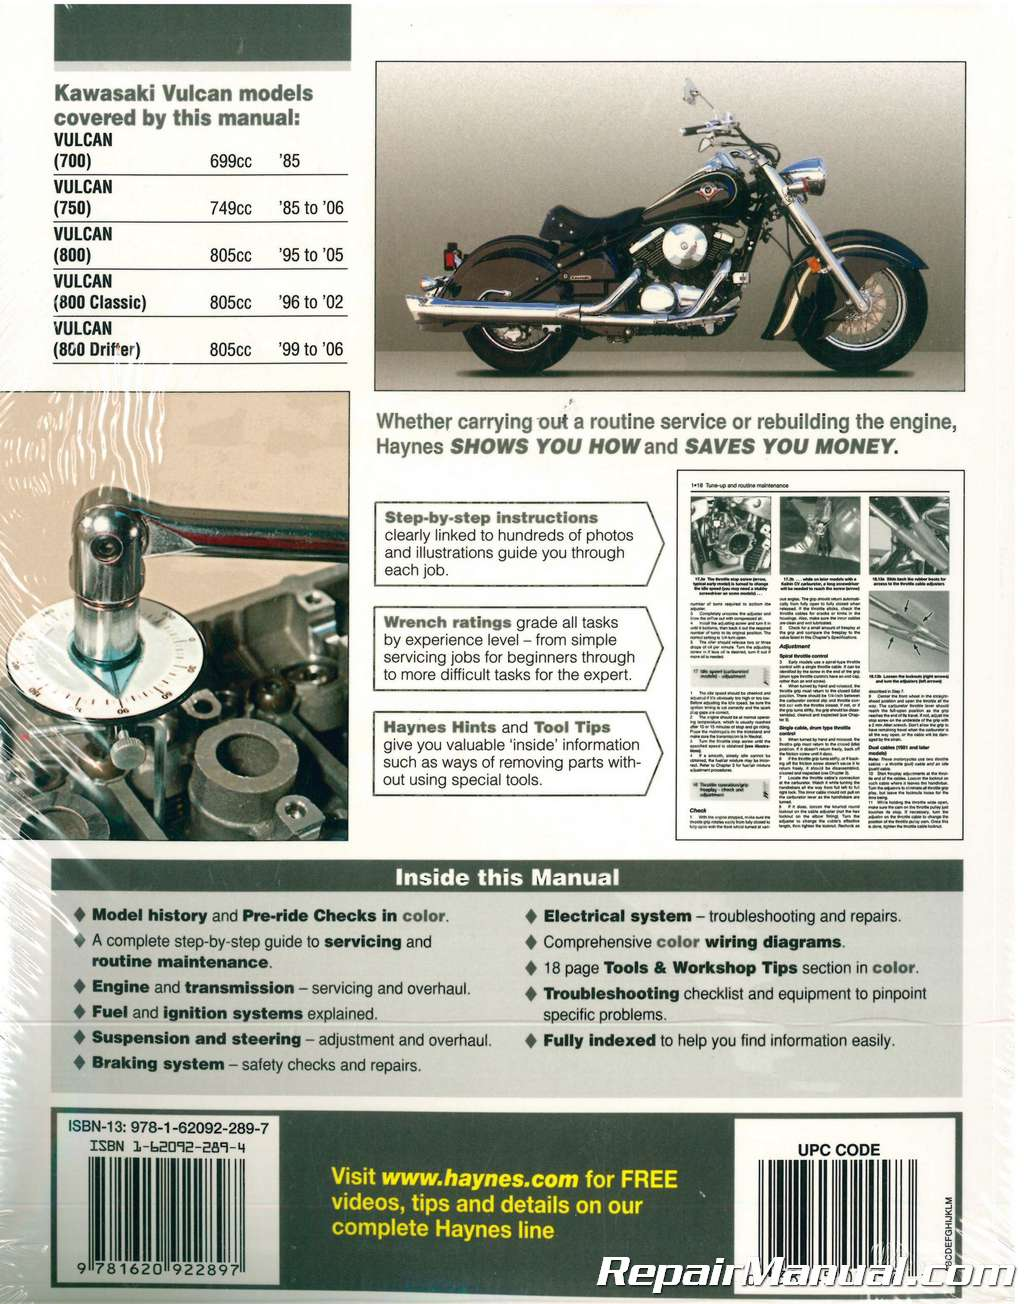 2001 Kawasaki Motorcycle Wiring Diagrams | Wiring Diagram on